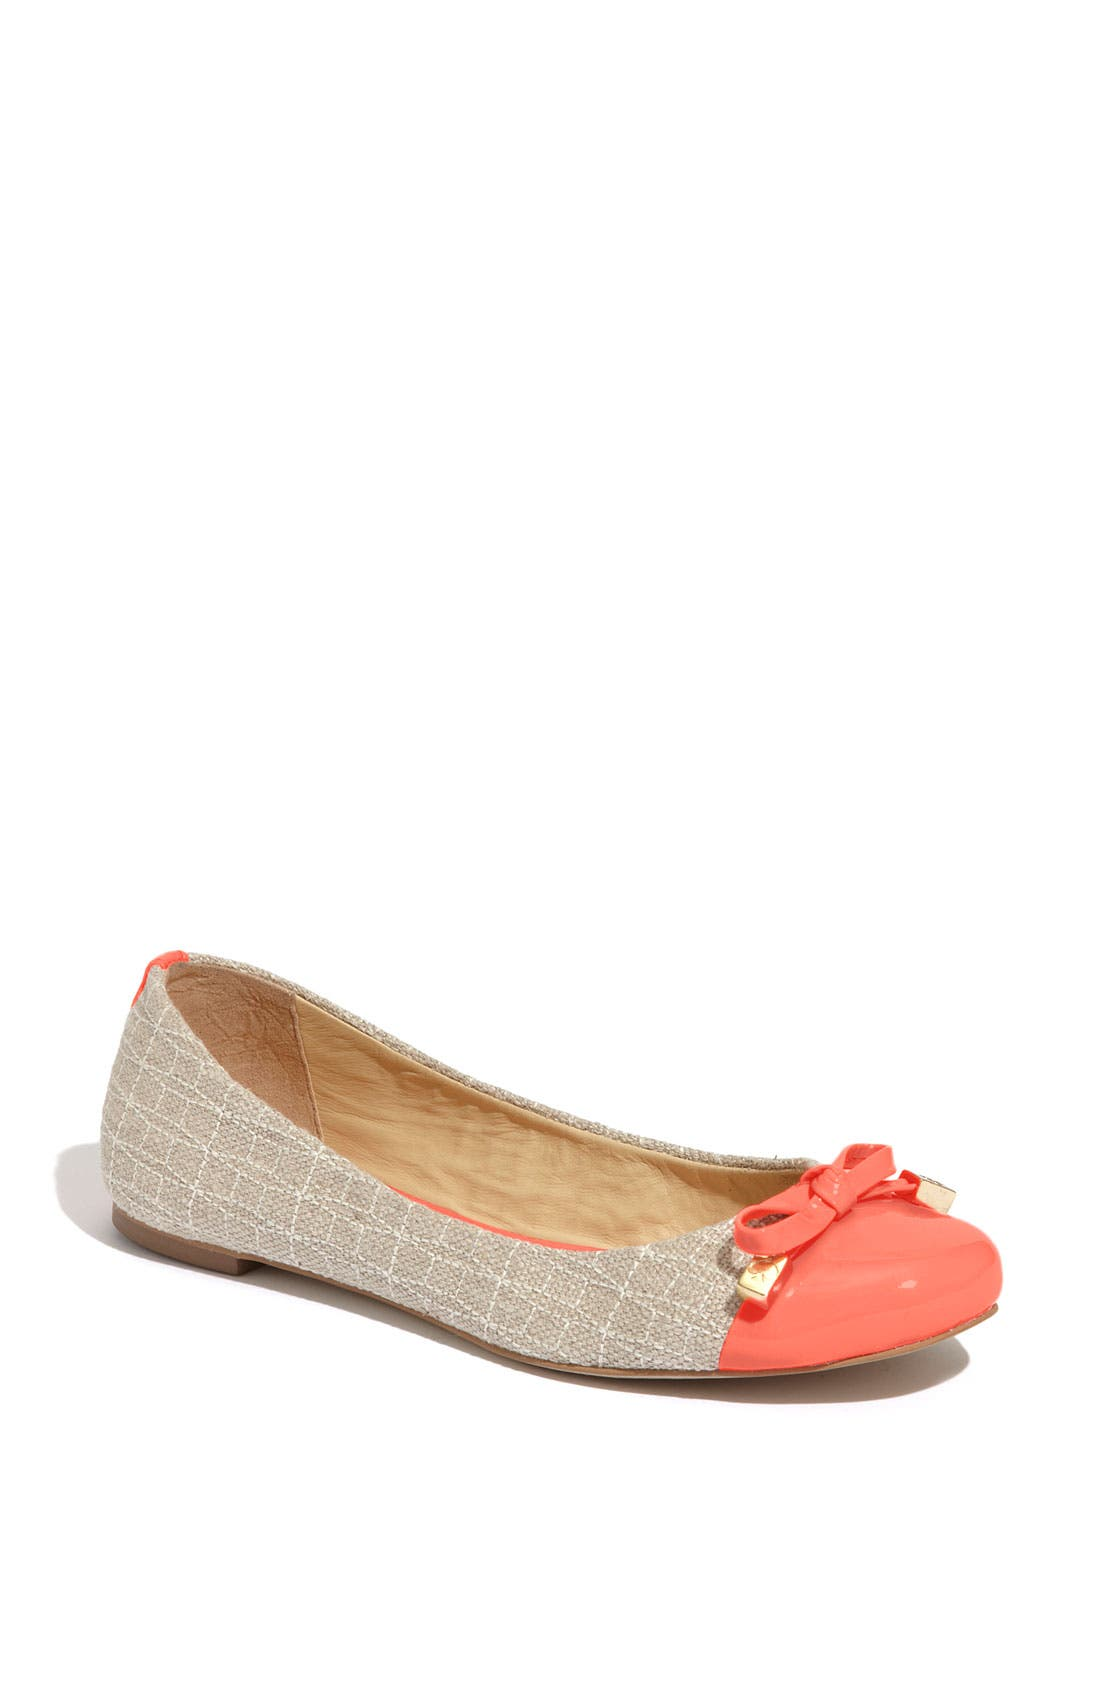 Main Image - kate spade new york 'heather' flat